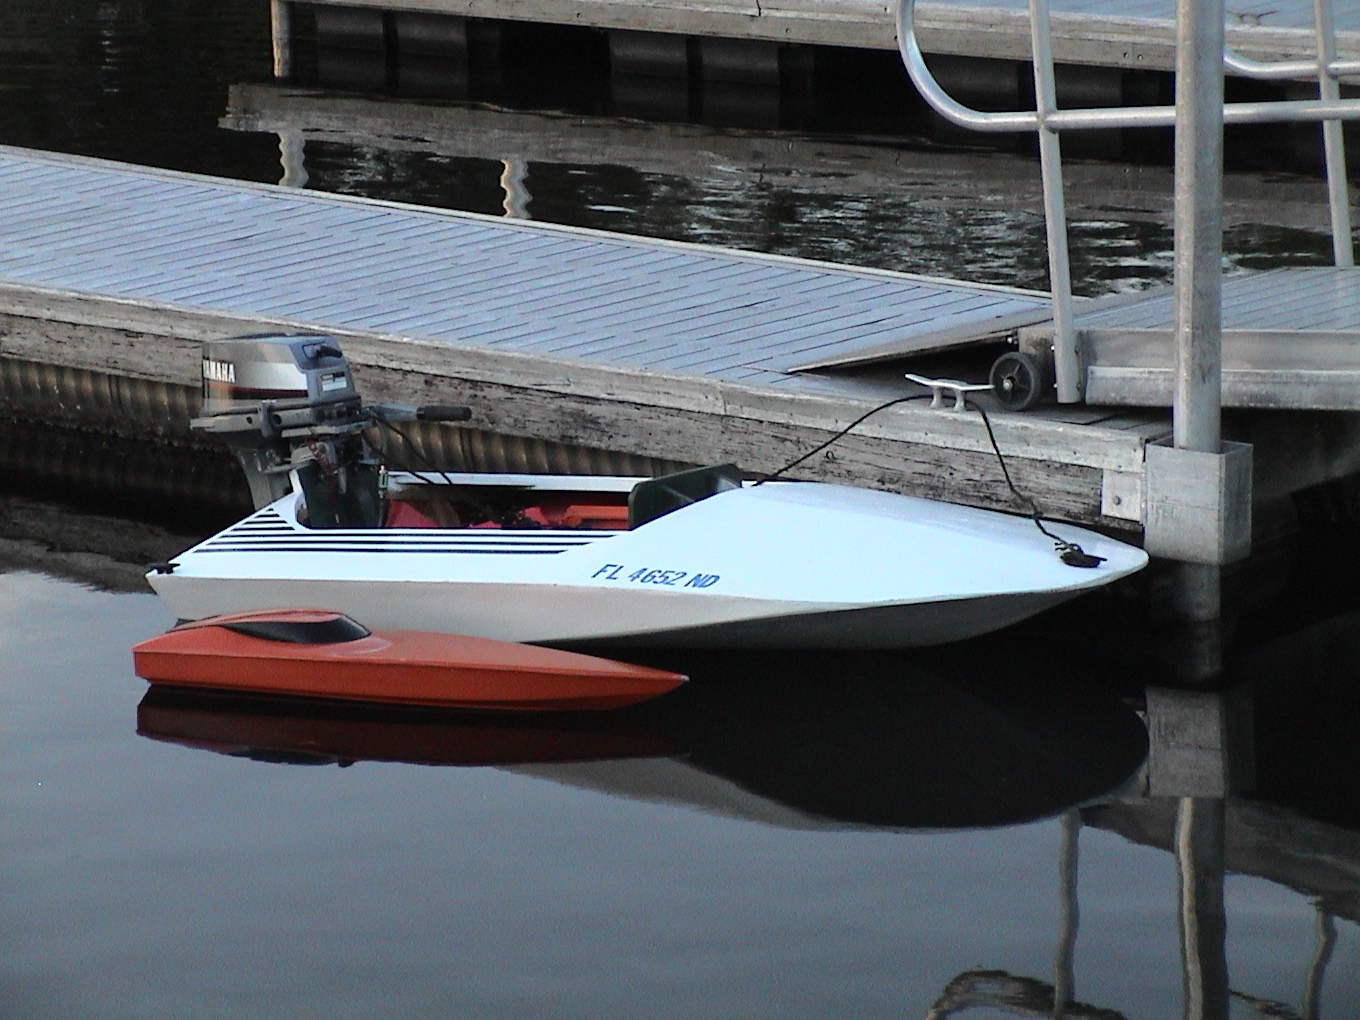 Minimost with RC boat | Boat Design Net